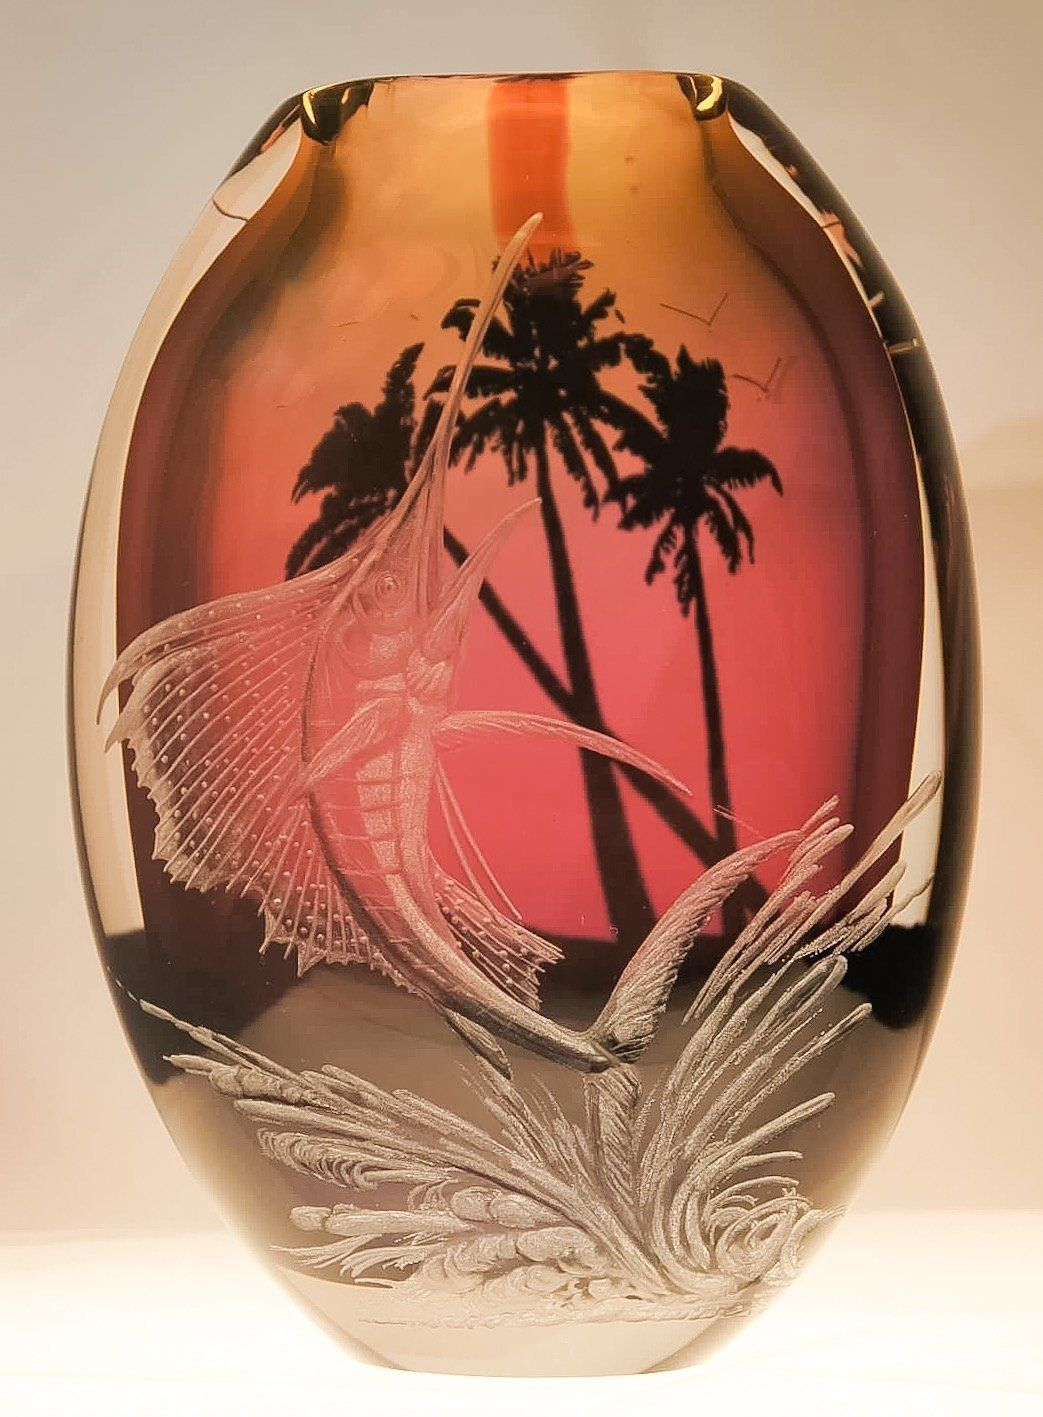 Hand engraved vase sailfish engraved floral vase sailfish hand hand engraved vase sailfish engraved floral vase sailfish hand blown vase engraved with sailfish and hand painted trees in the background reviewsmspy